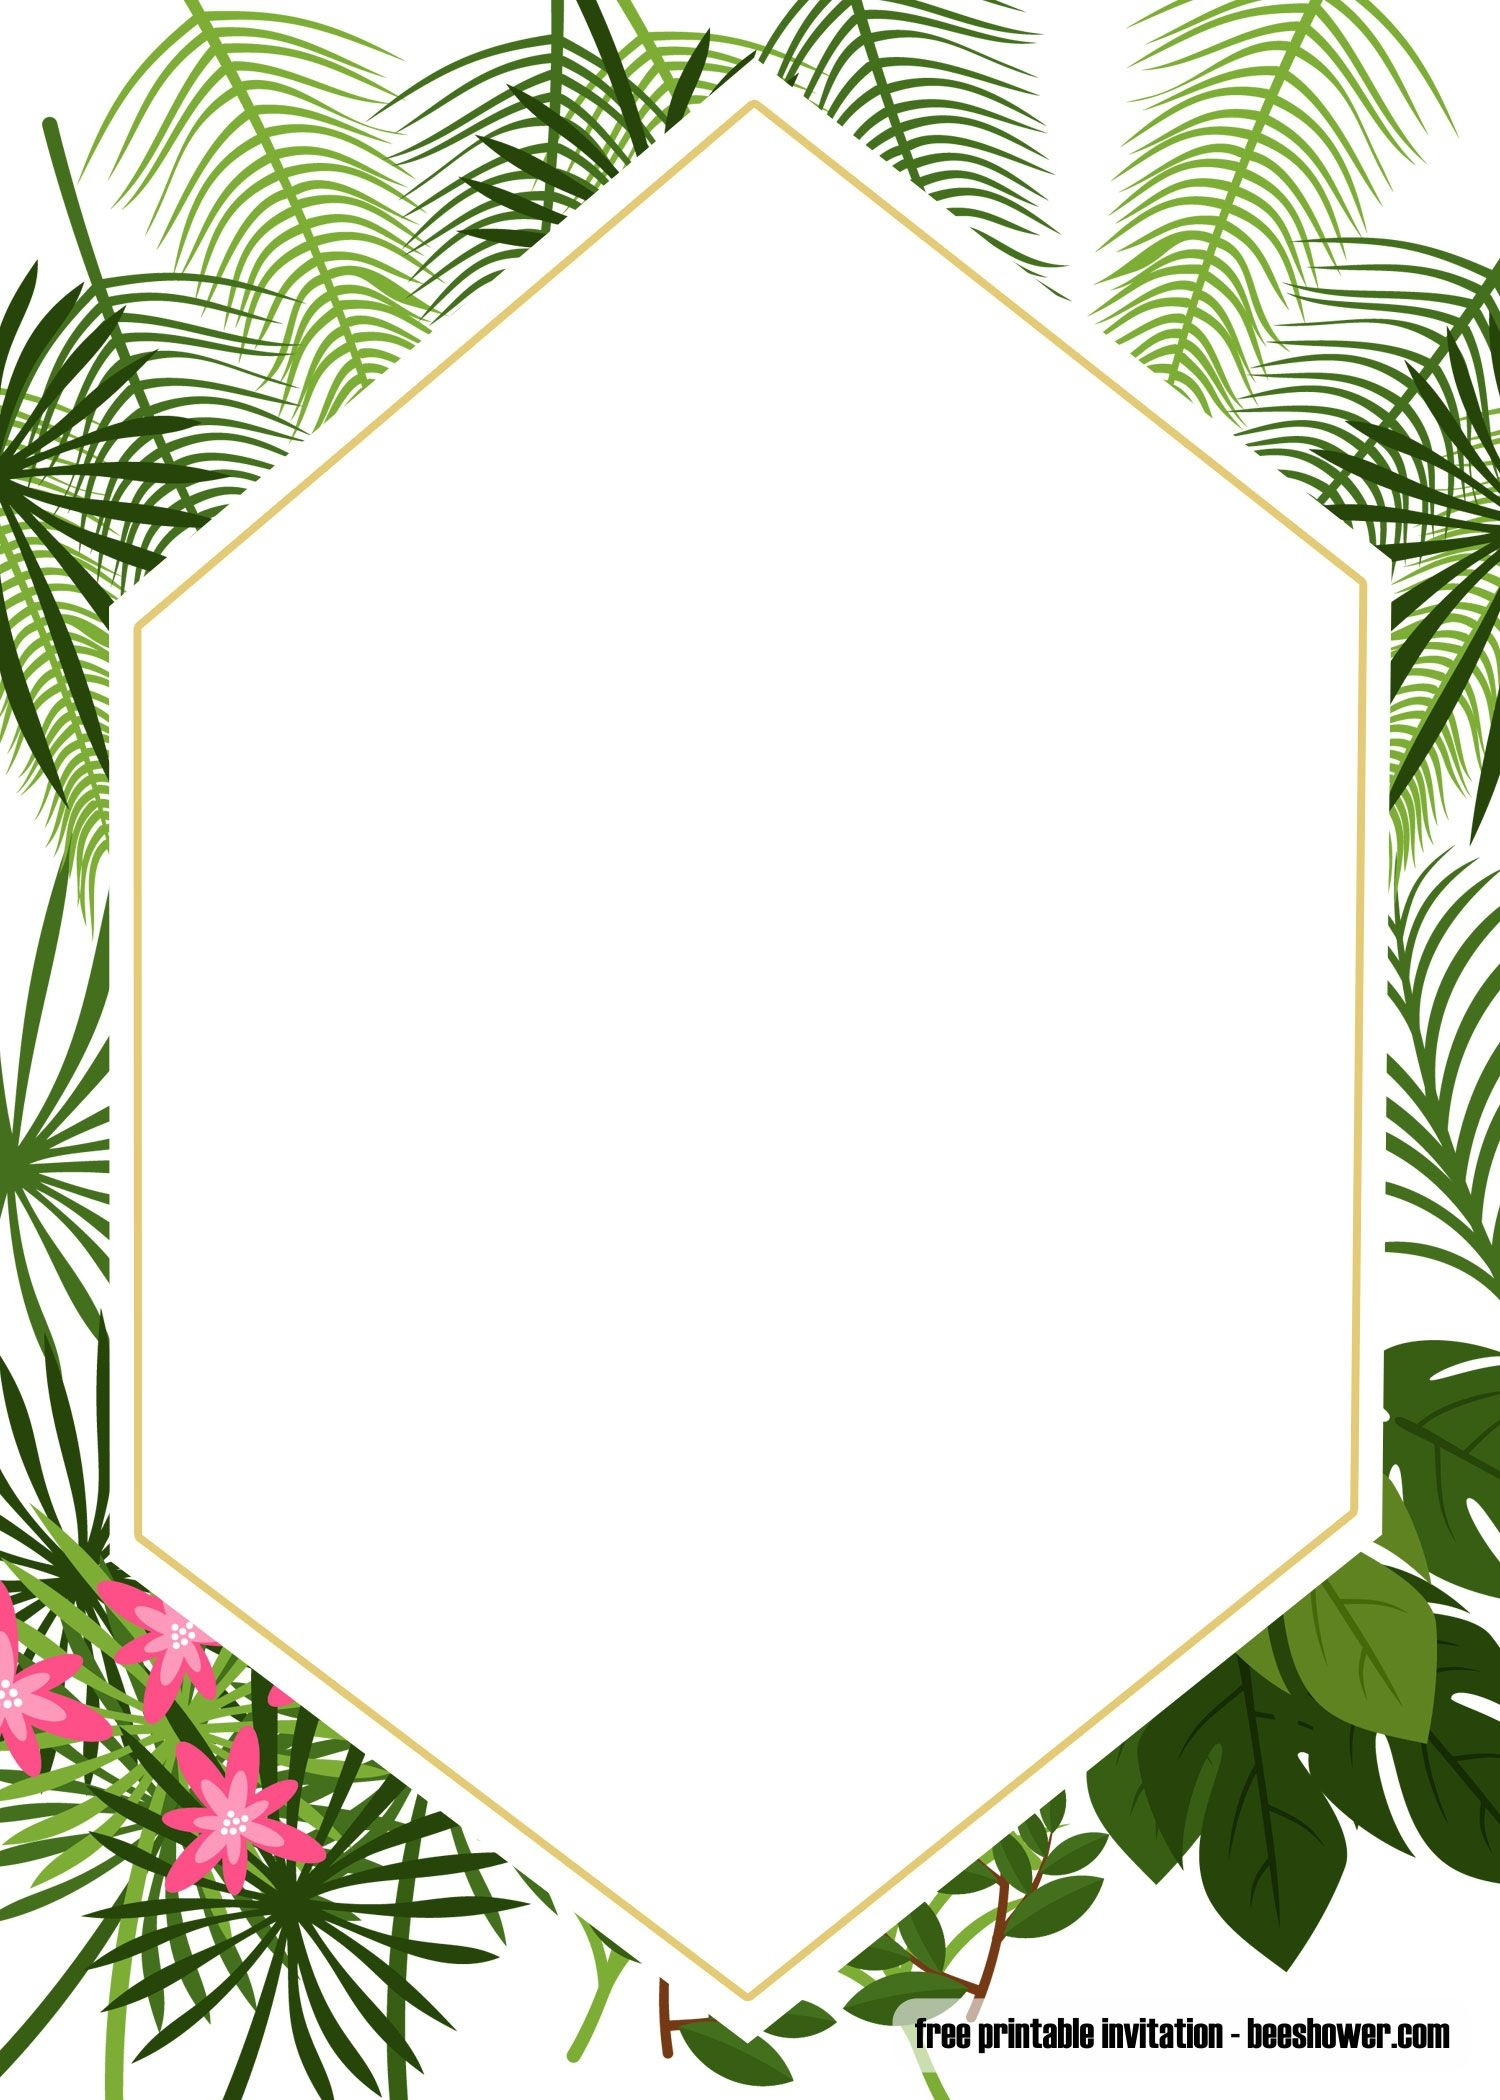 Get Free Printable Tropical Baby Shower Invitation Template - Free Printable Luau Baby Shower Invitations